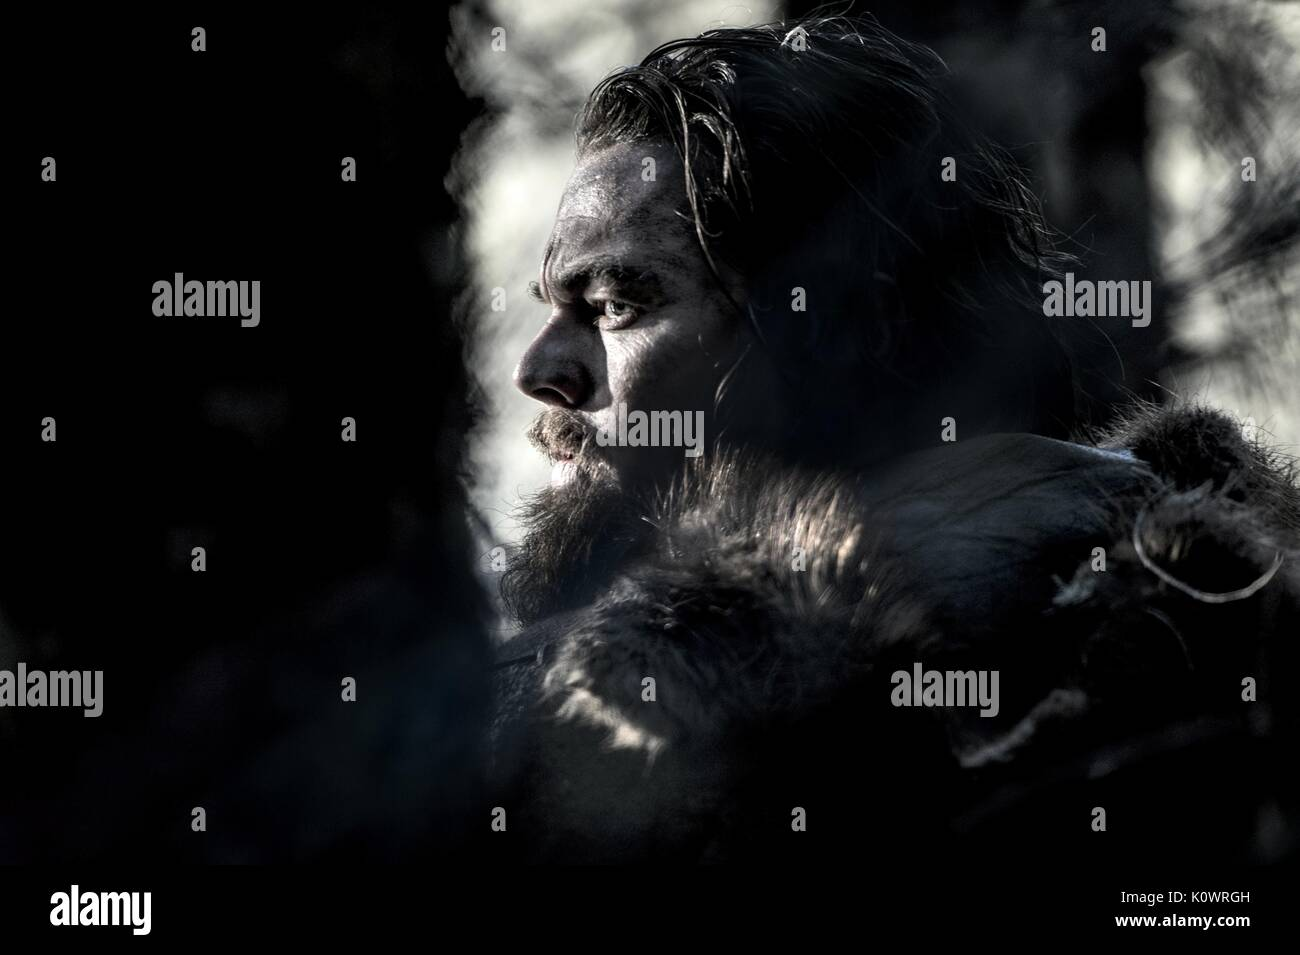 LEONARDO DICAPRIO THE REVENANT (2015) - Stock Image